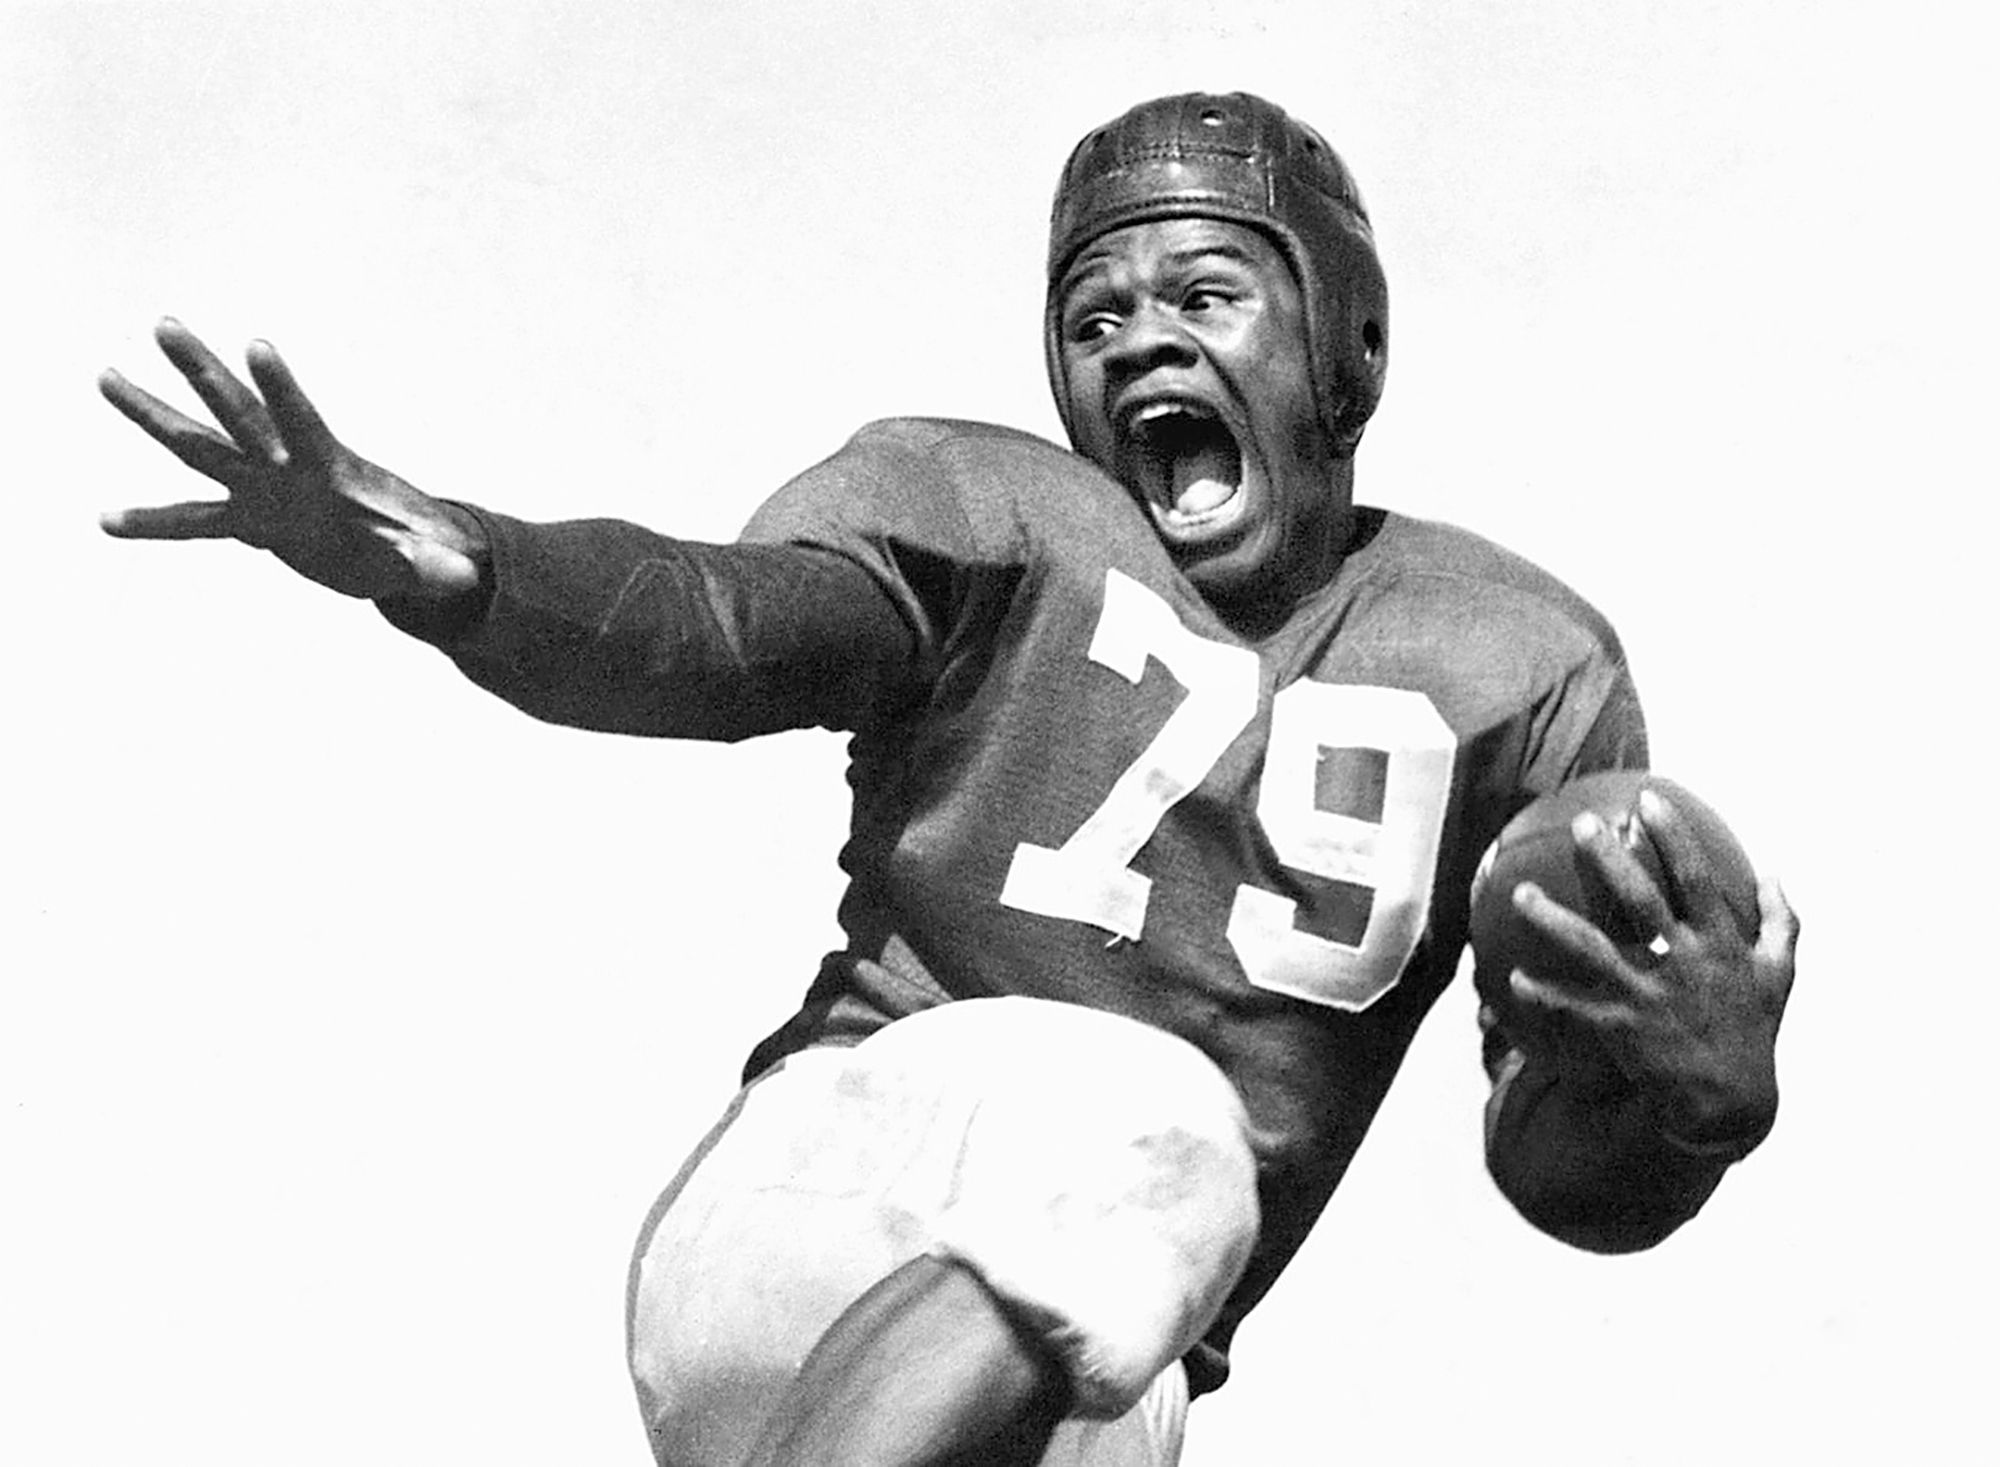 George Taliaferro, first African-American ever taken in NFL draft, dies at 91